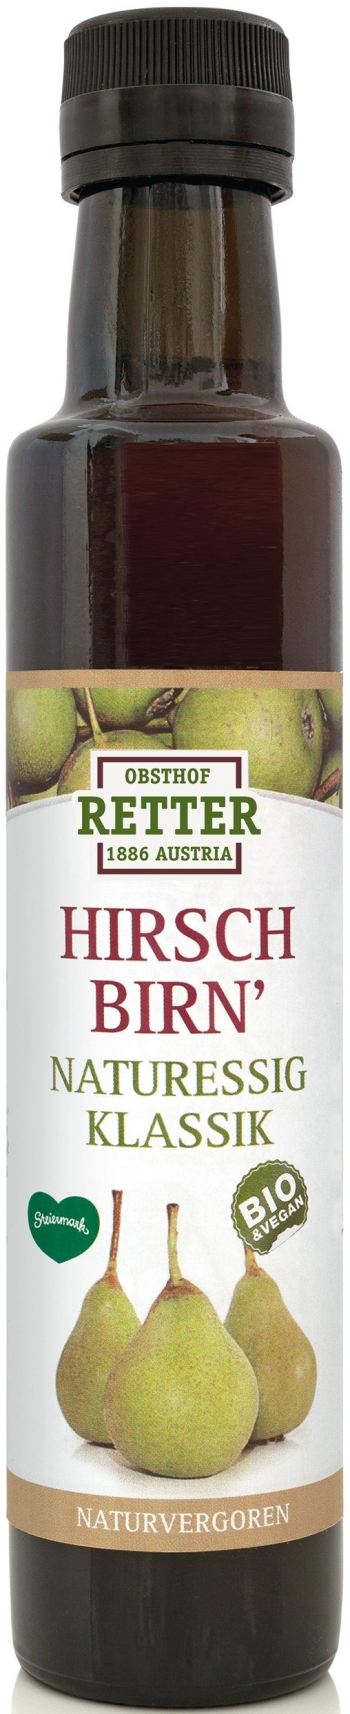 Hirschbirn Naturessig, 250ml Retter